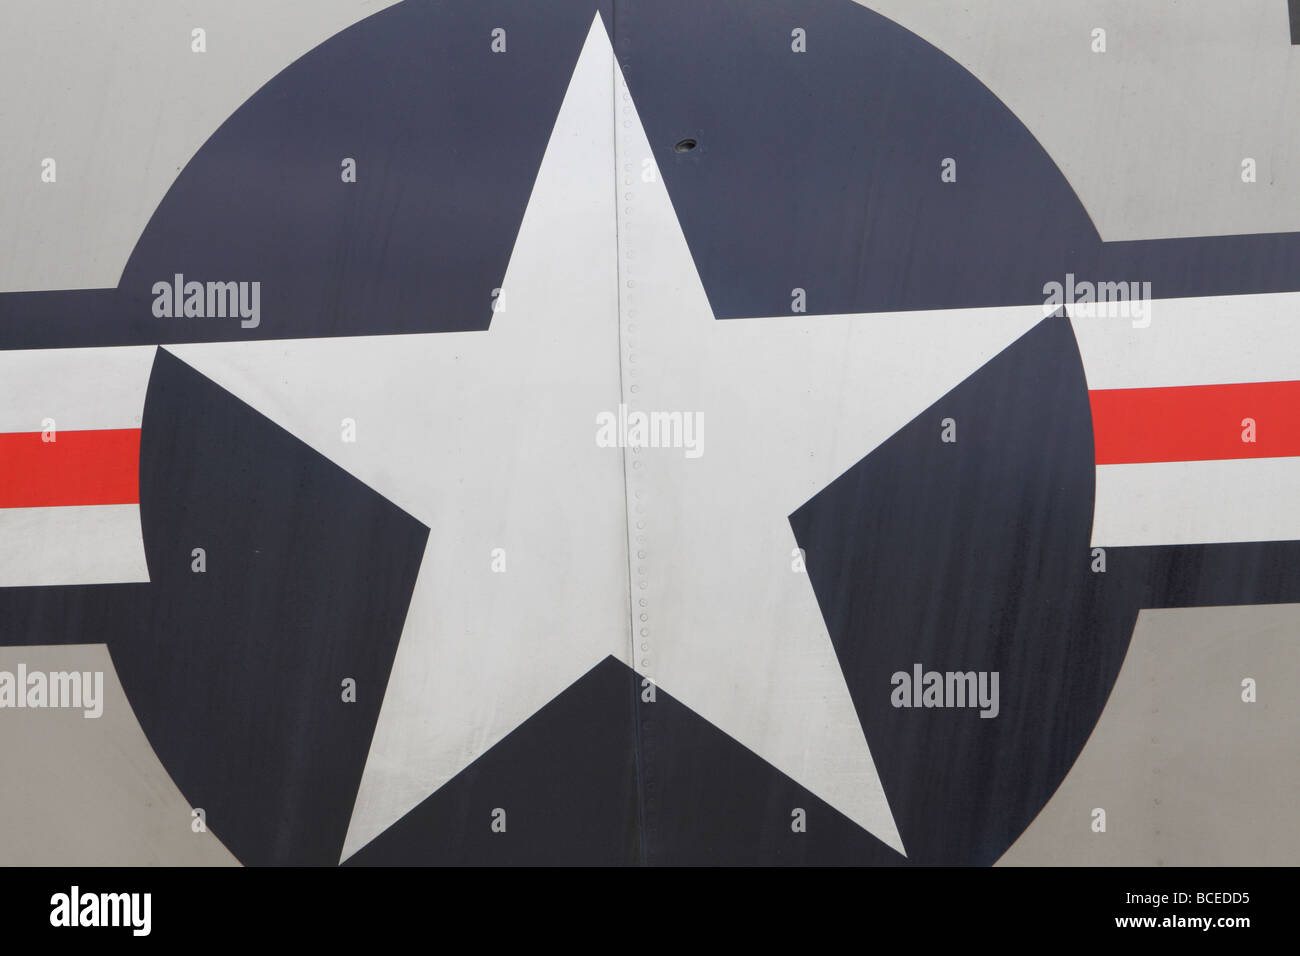 US USAF US Navy American military roundel symbol icon star and bar - Stock Image